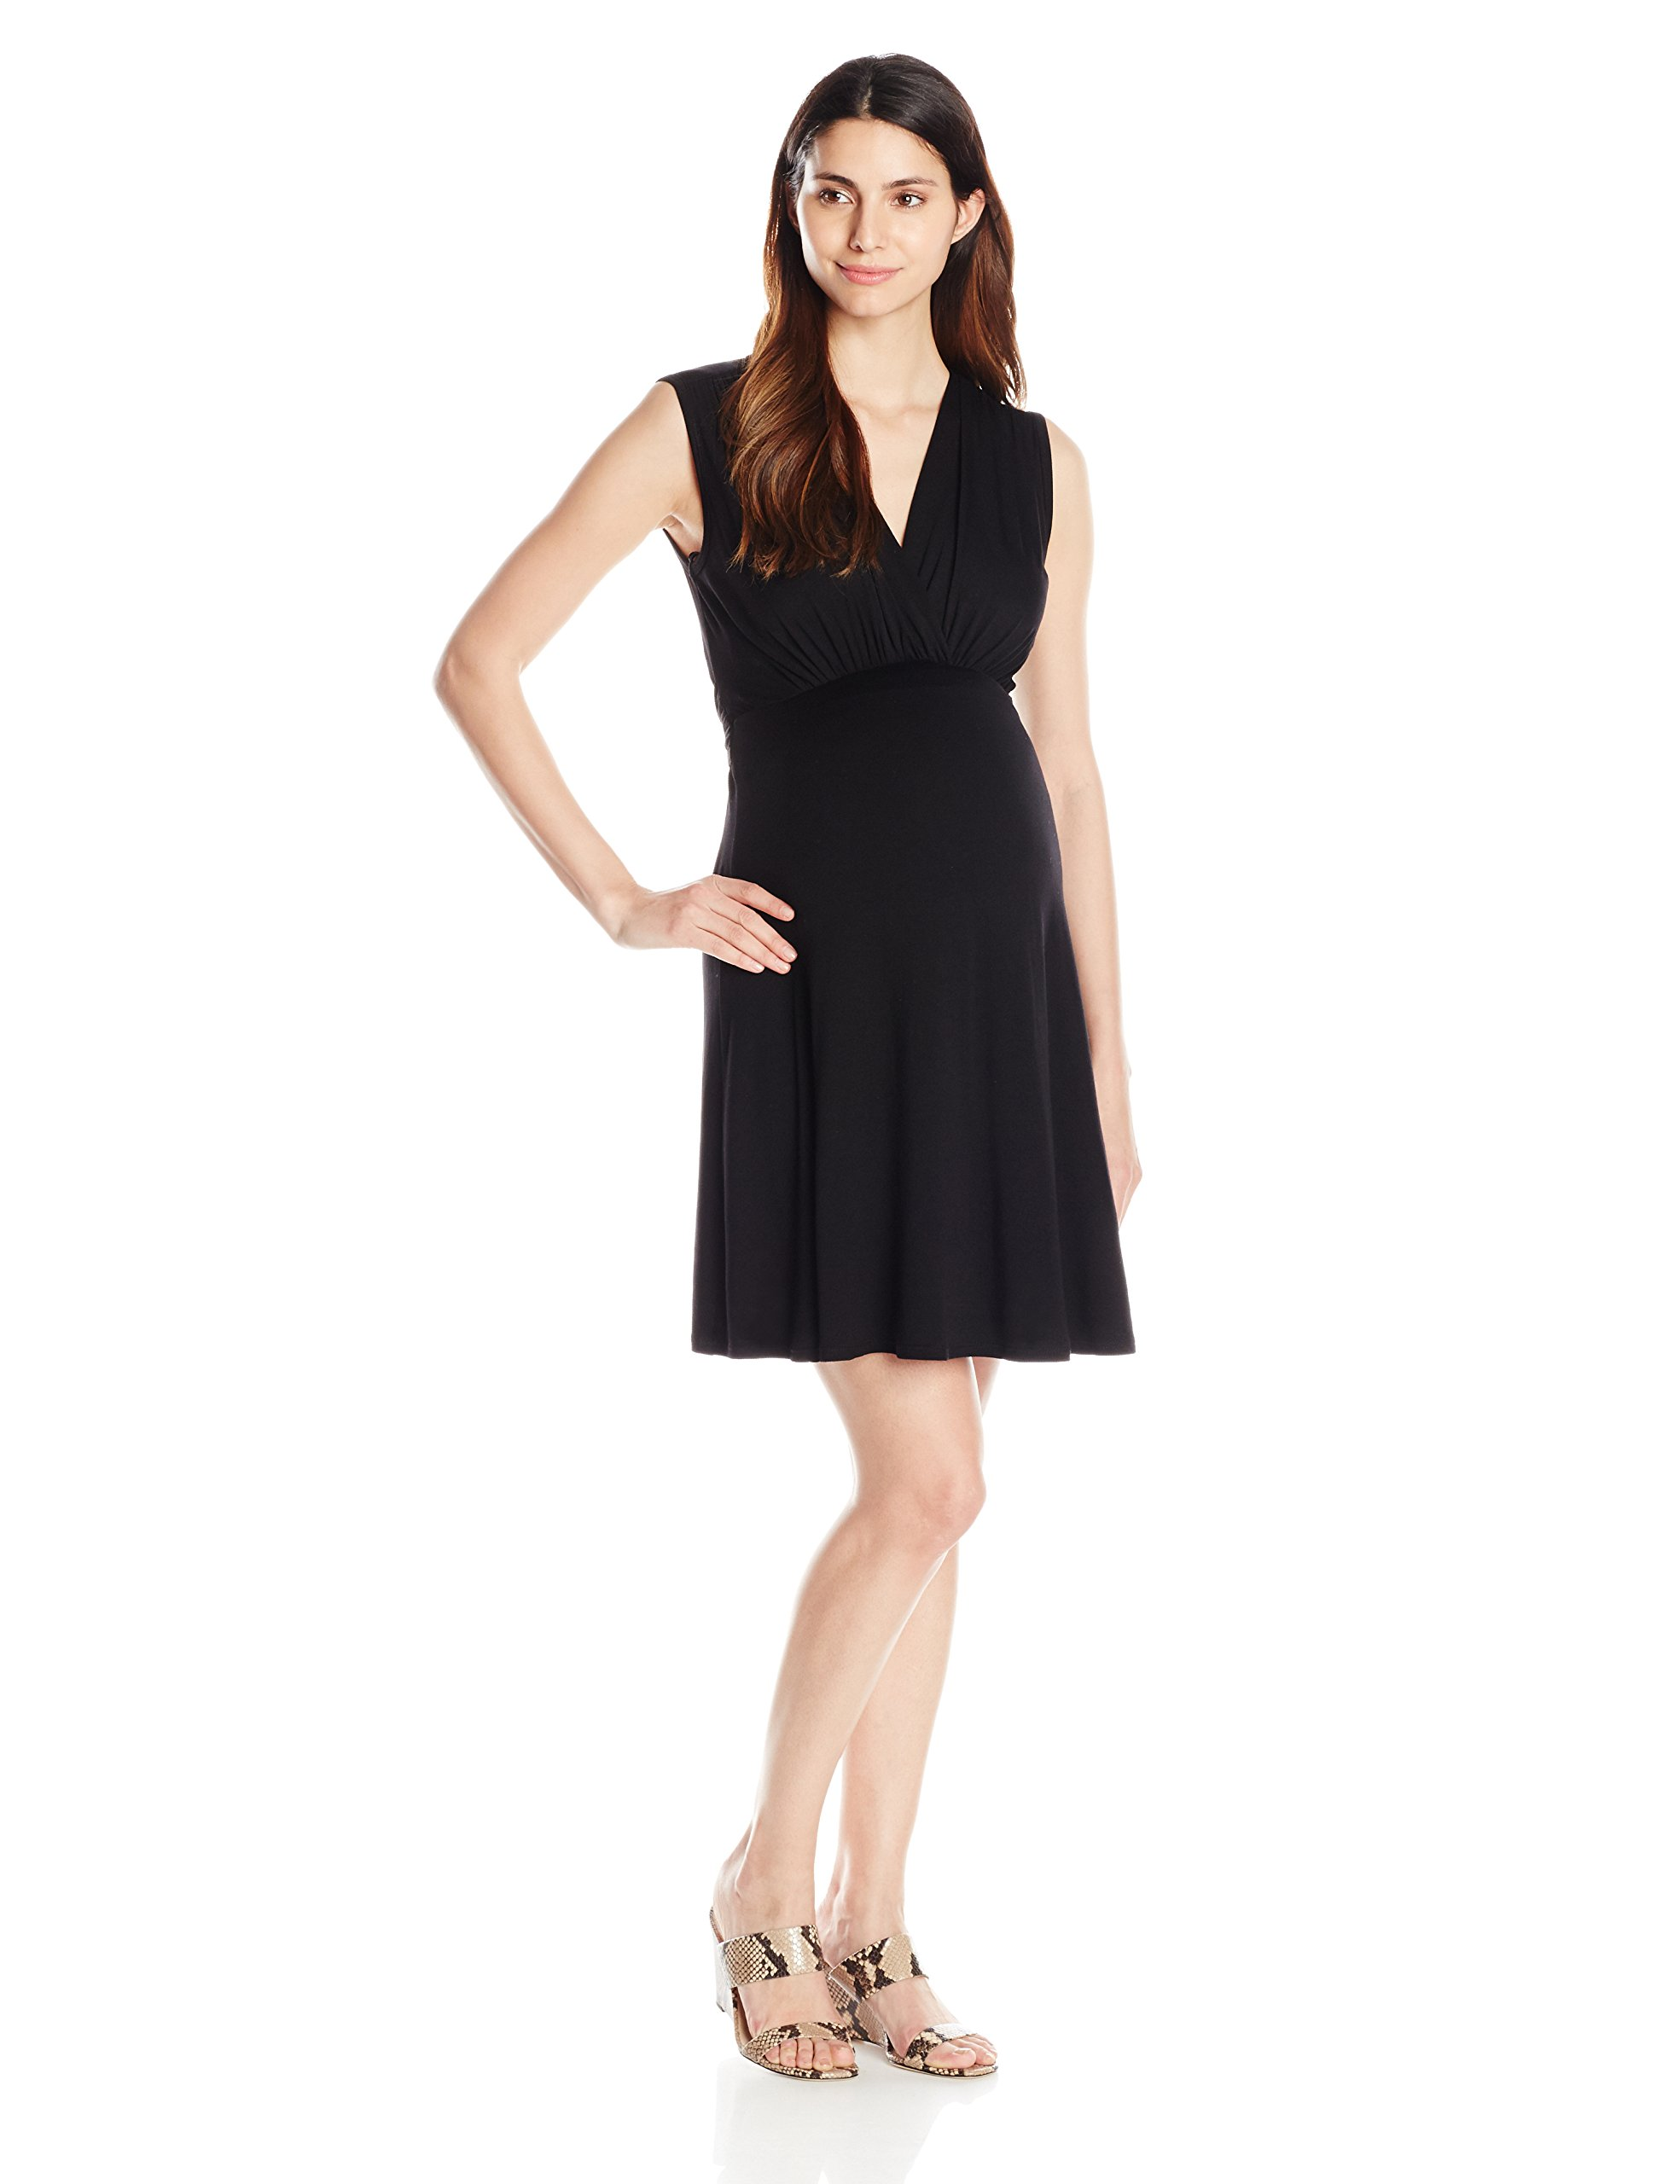 Maternal America Women's Maternity Mini Sleeveless Front Tie Dress, Black, Large by Maternal America